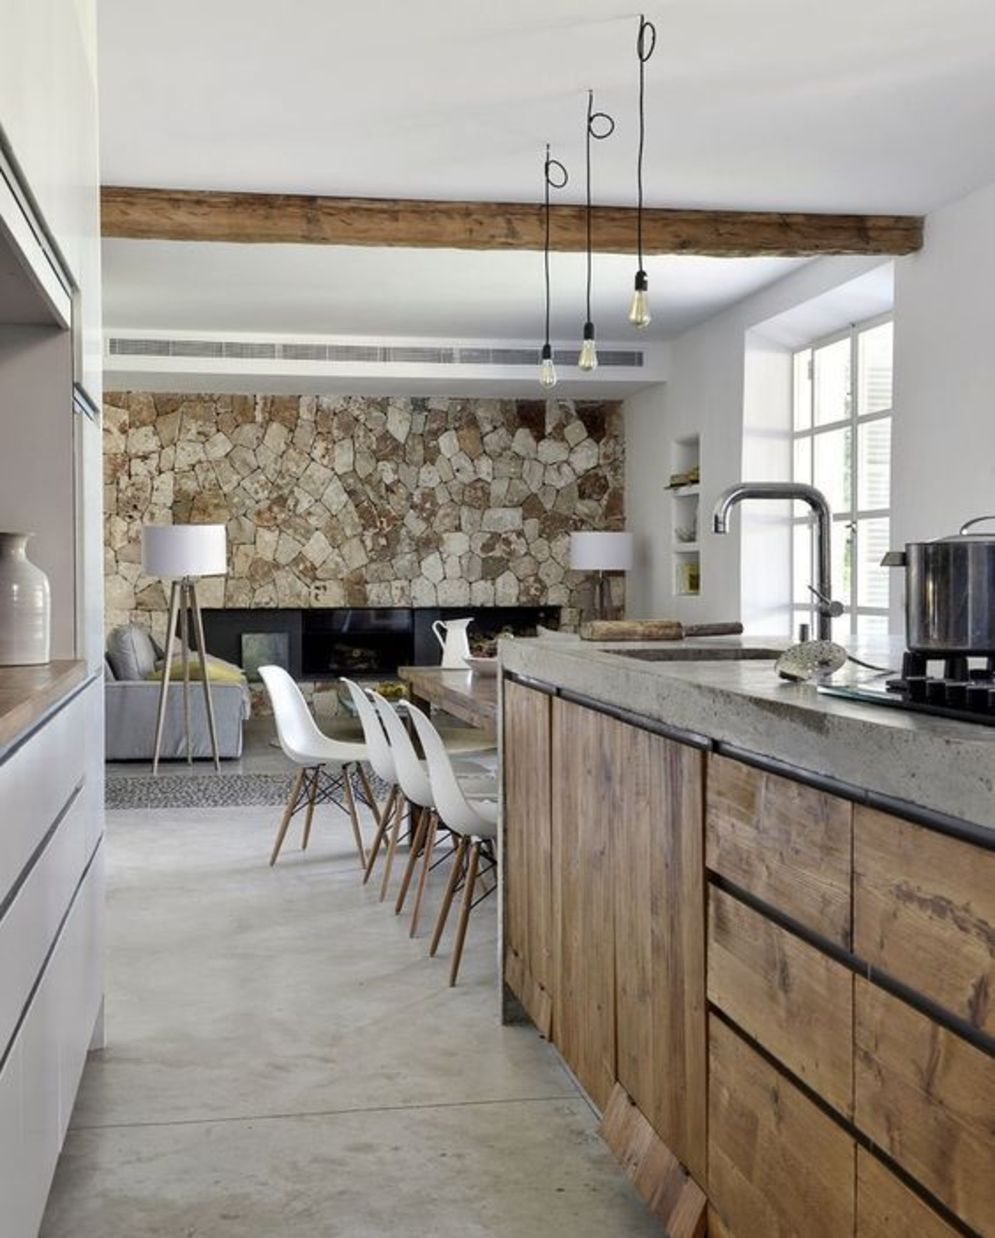 Classy kitchen styles in bold display maximizing concrete benchtop designs Image 18